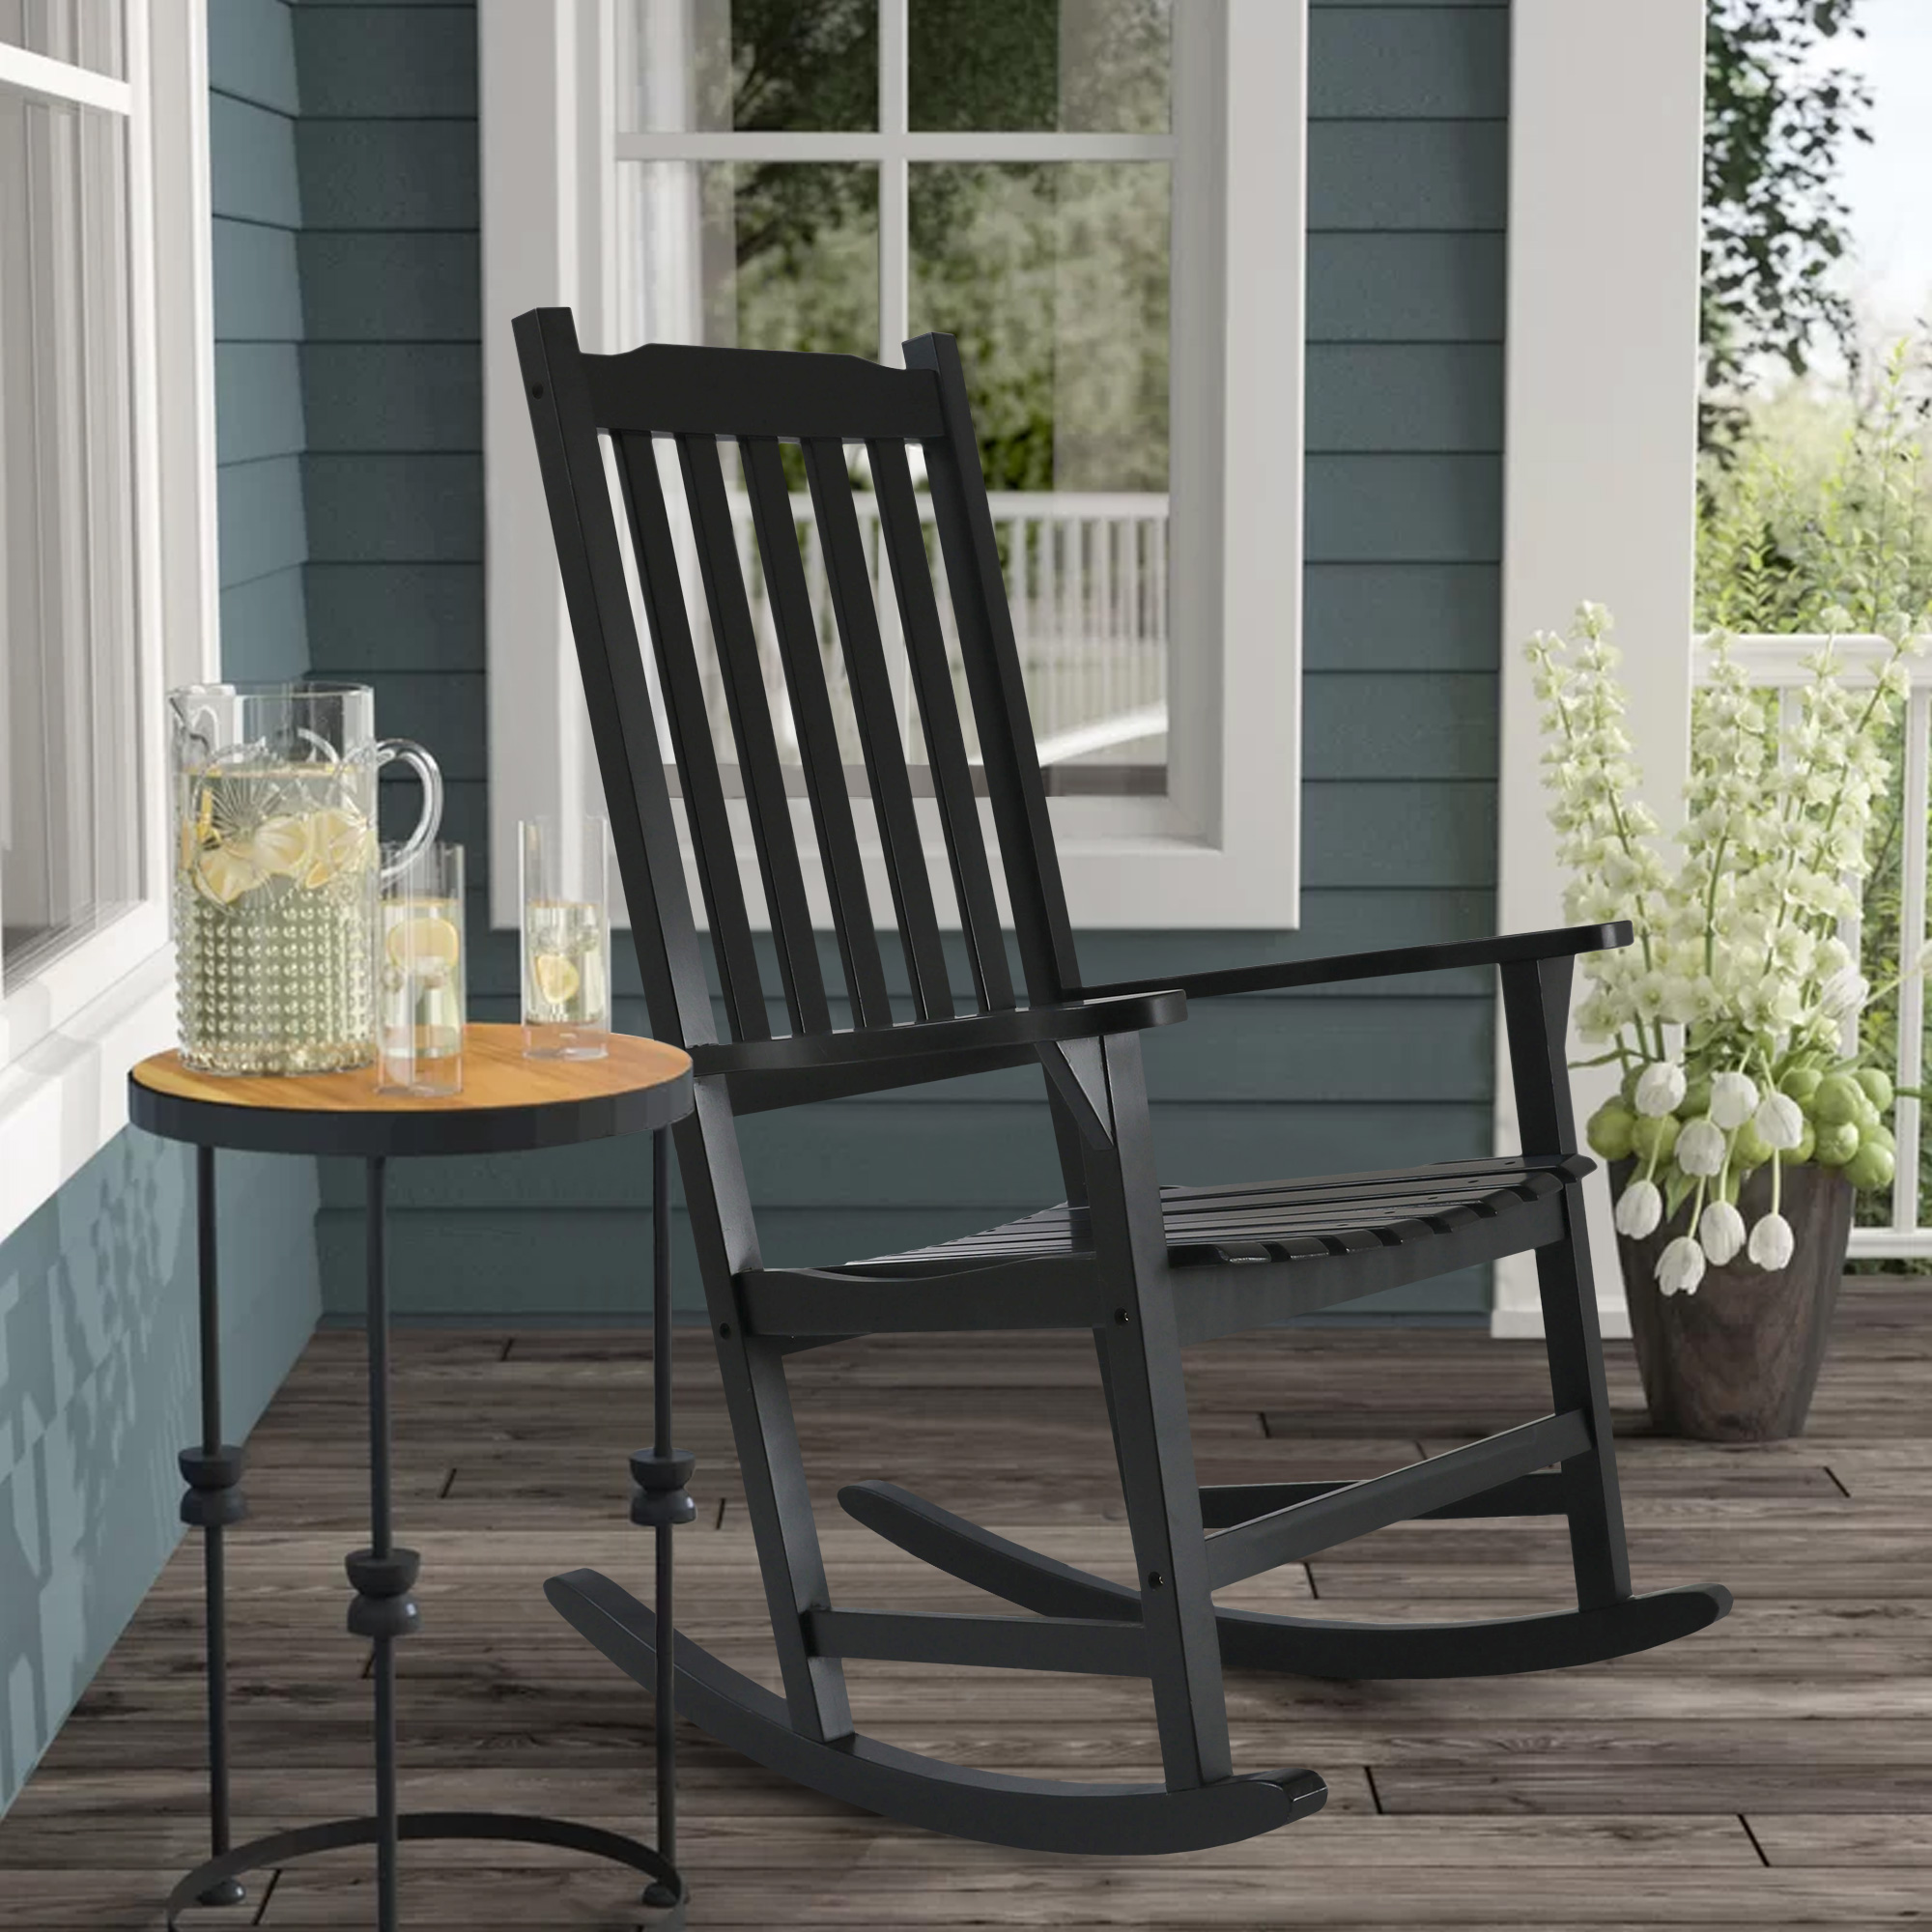 Outdoor Rocking Chairs For Porch